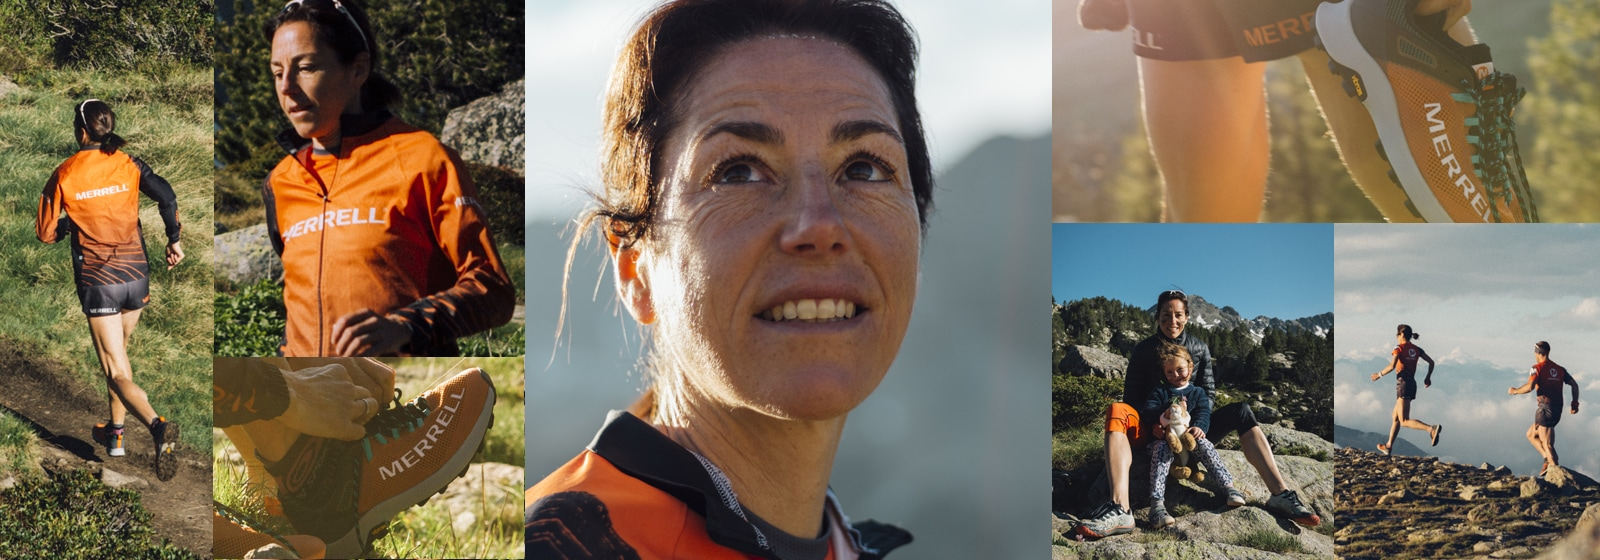 A collage of photos of the Merrell MTL Long Sky and Ranga Debats